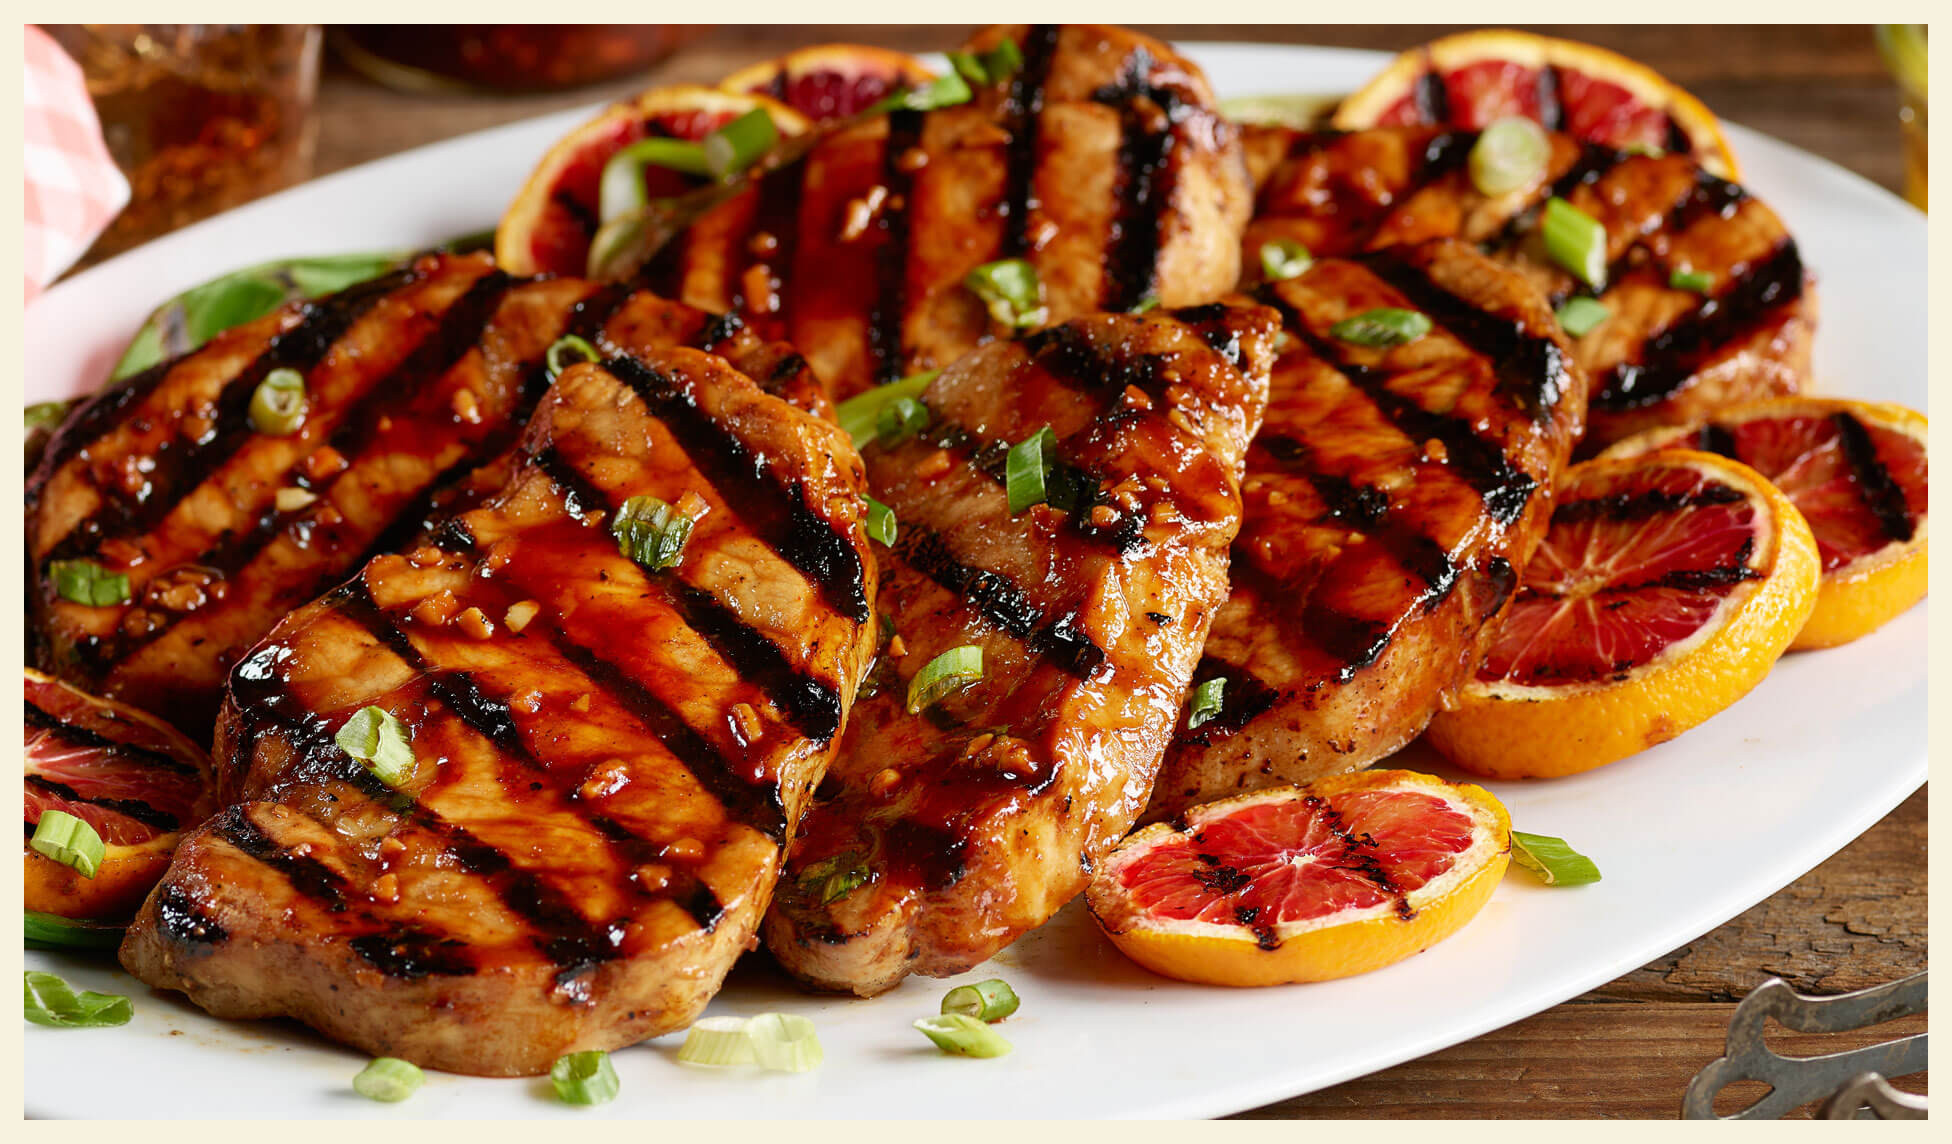 Grill Pork Chops Time  Smithfield Get Grilling America